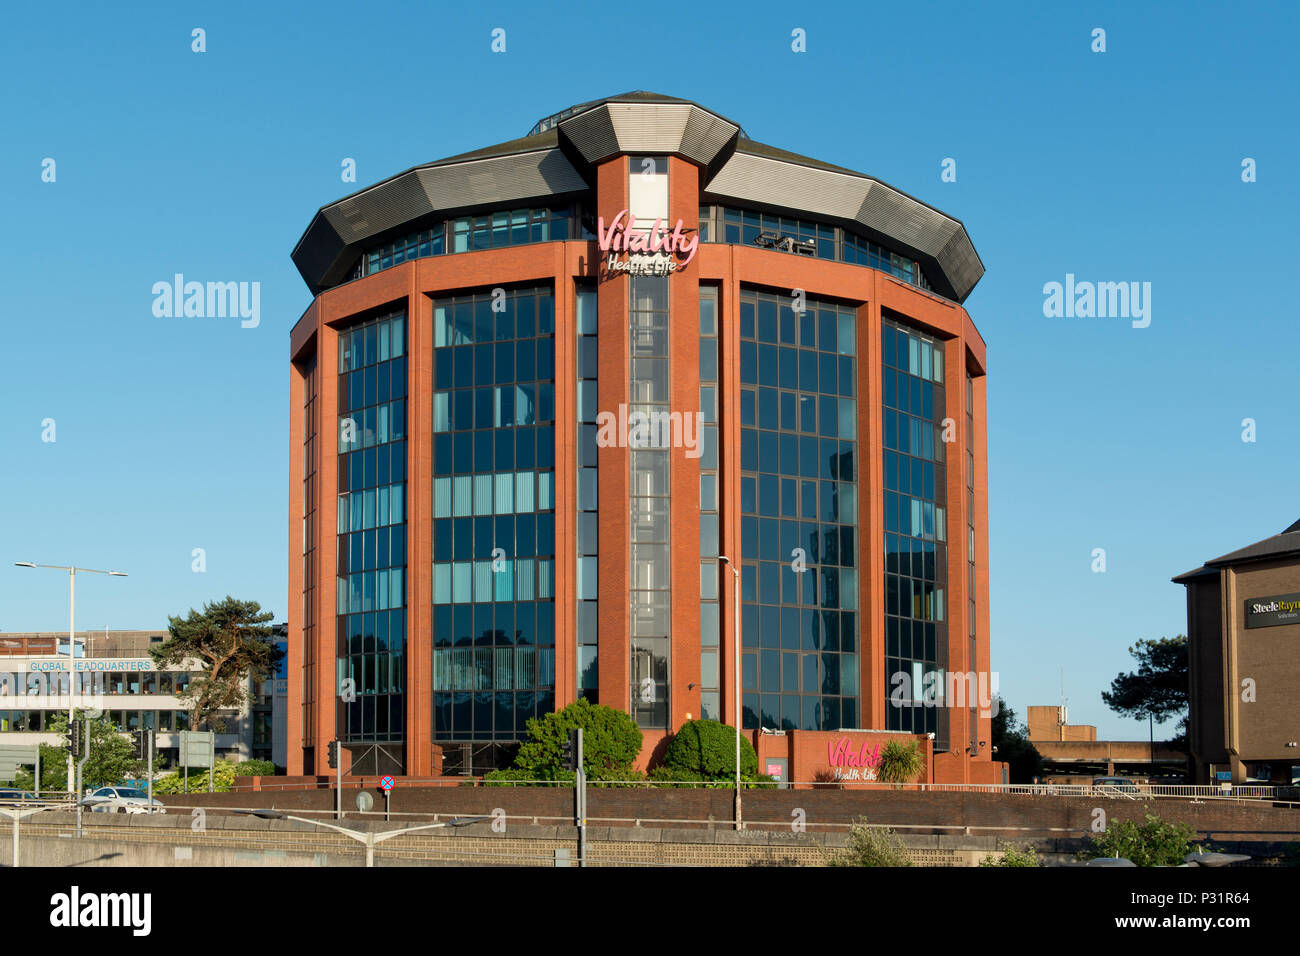 Signage for the Vitality health insurance company outside the company's building in Bournemouth. - Stock Image